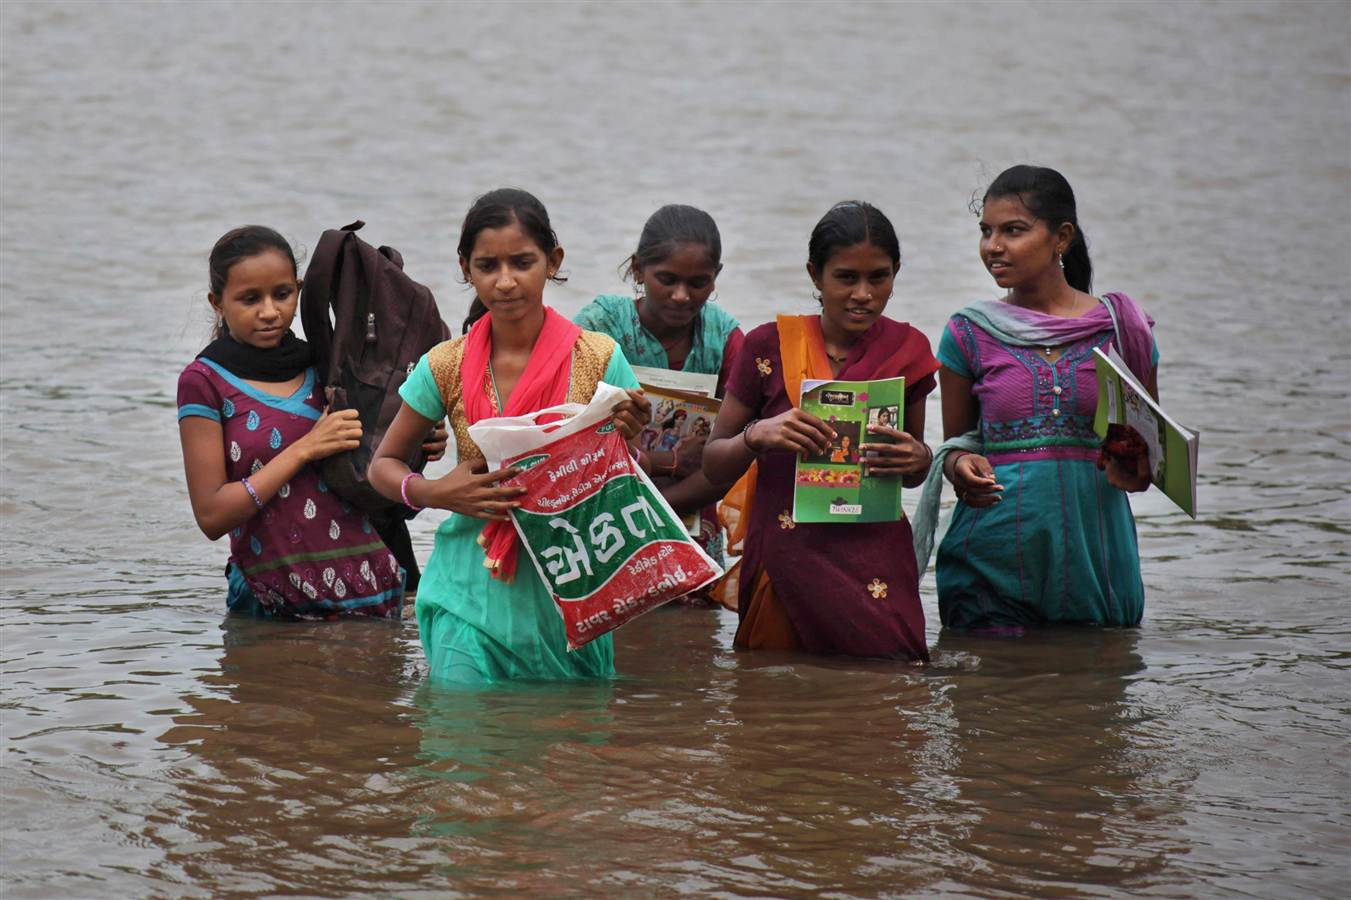 Photo: Associated Press, In Photos: A Rough Road To The Classroom | Leher NGO in India | Child Rights Organization